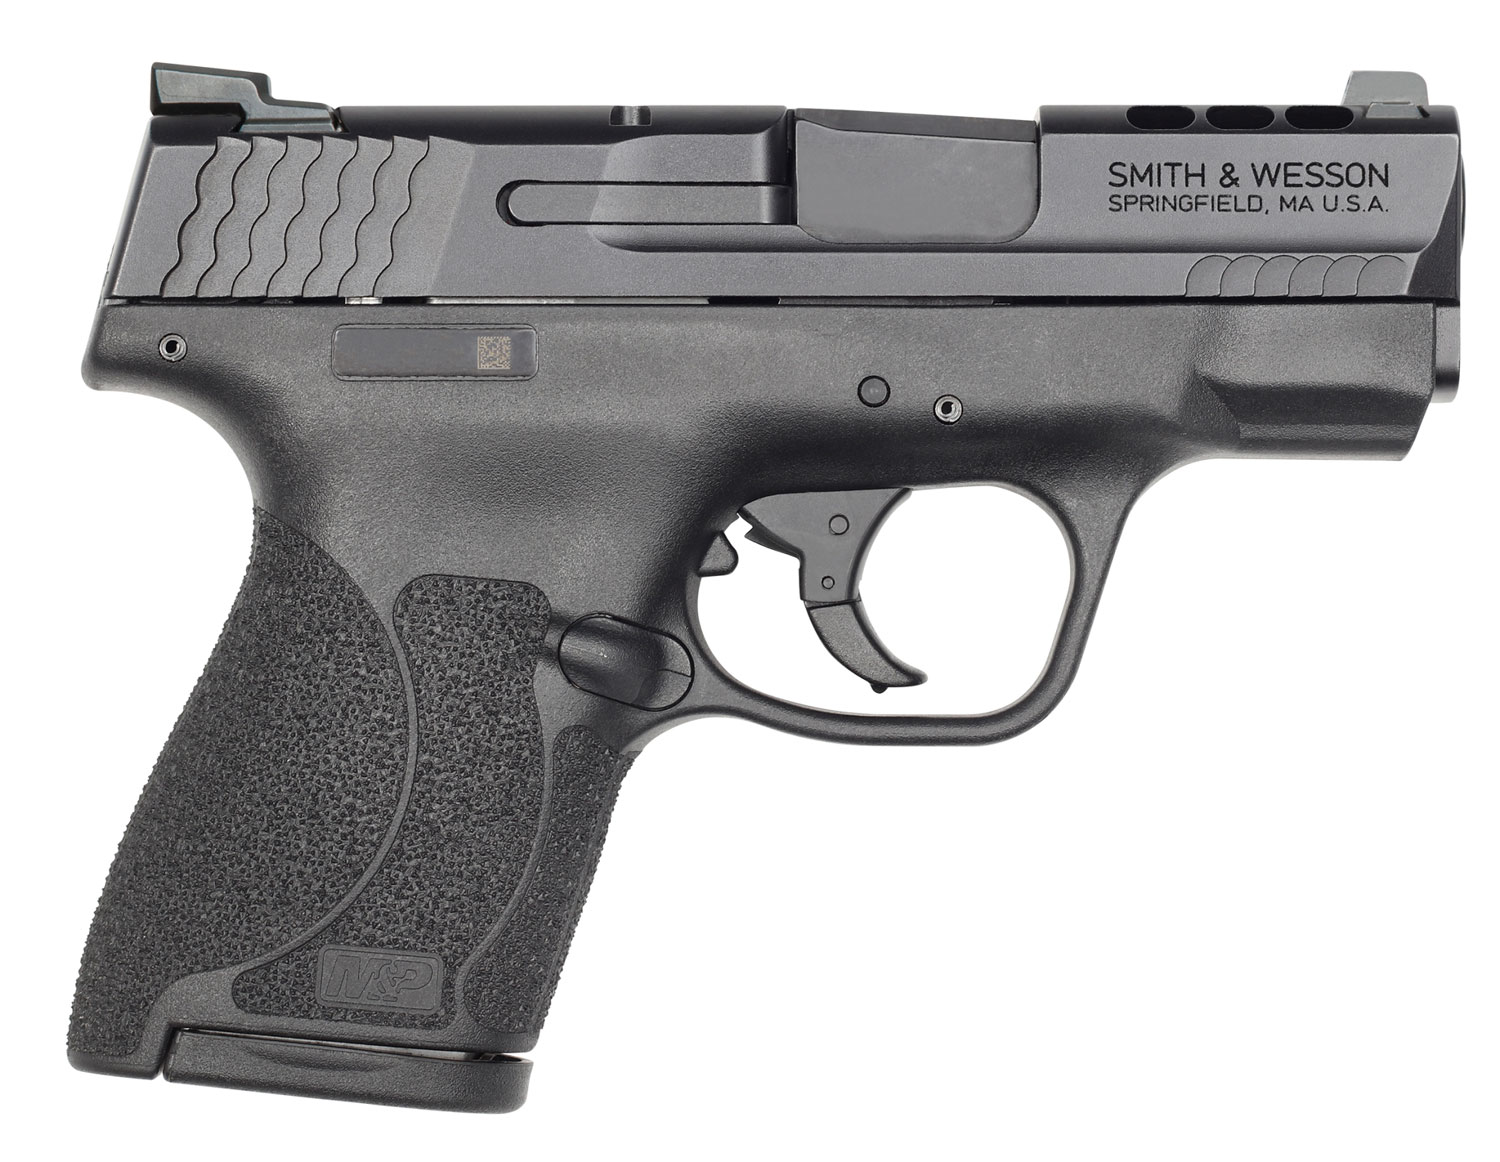 Smith & Wesson 11870 M&P Performance Center M2.0 40 S&W Double 3.1